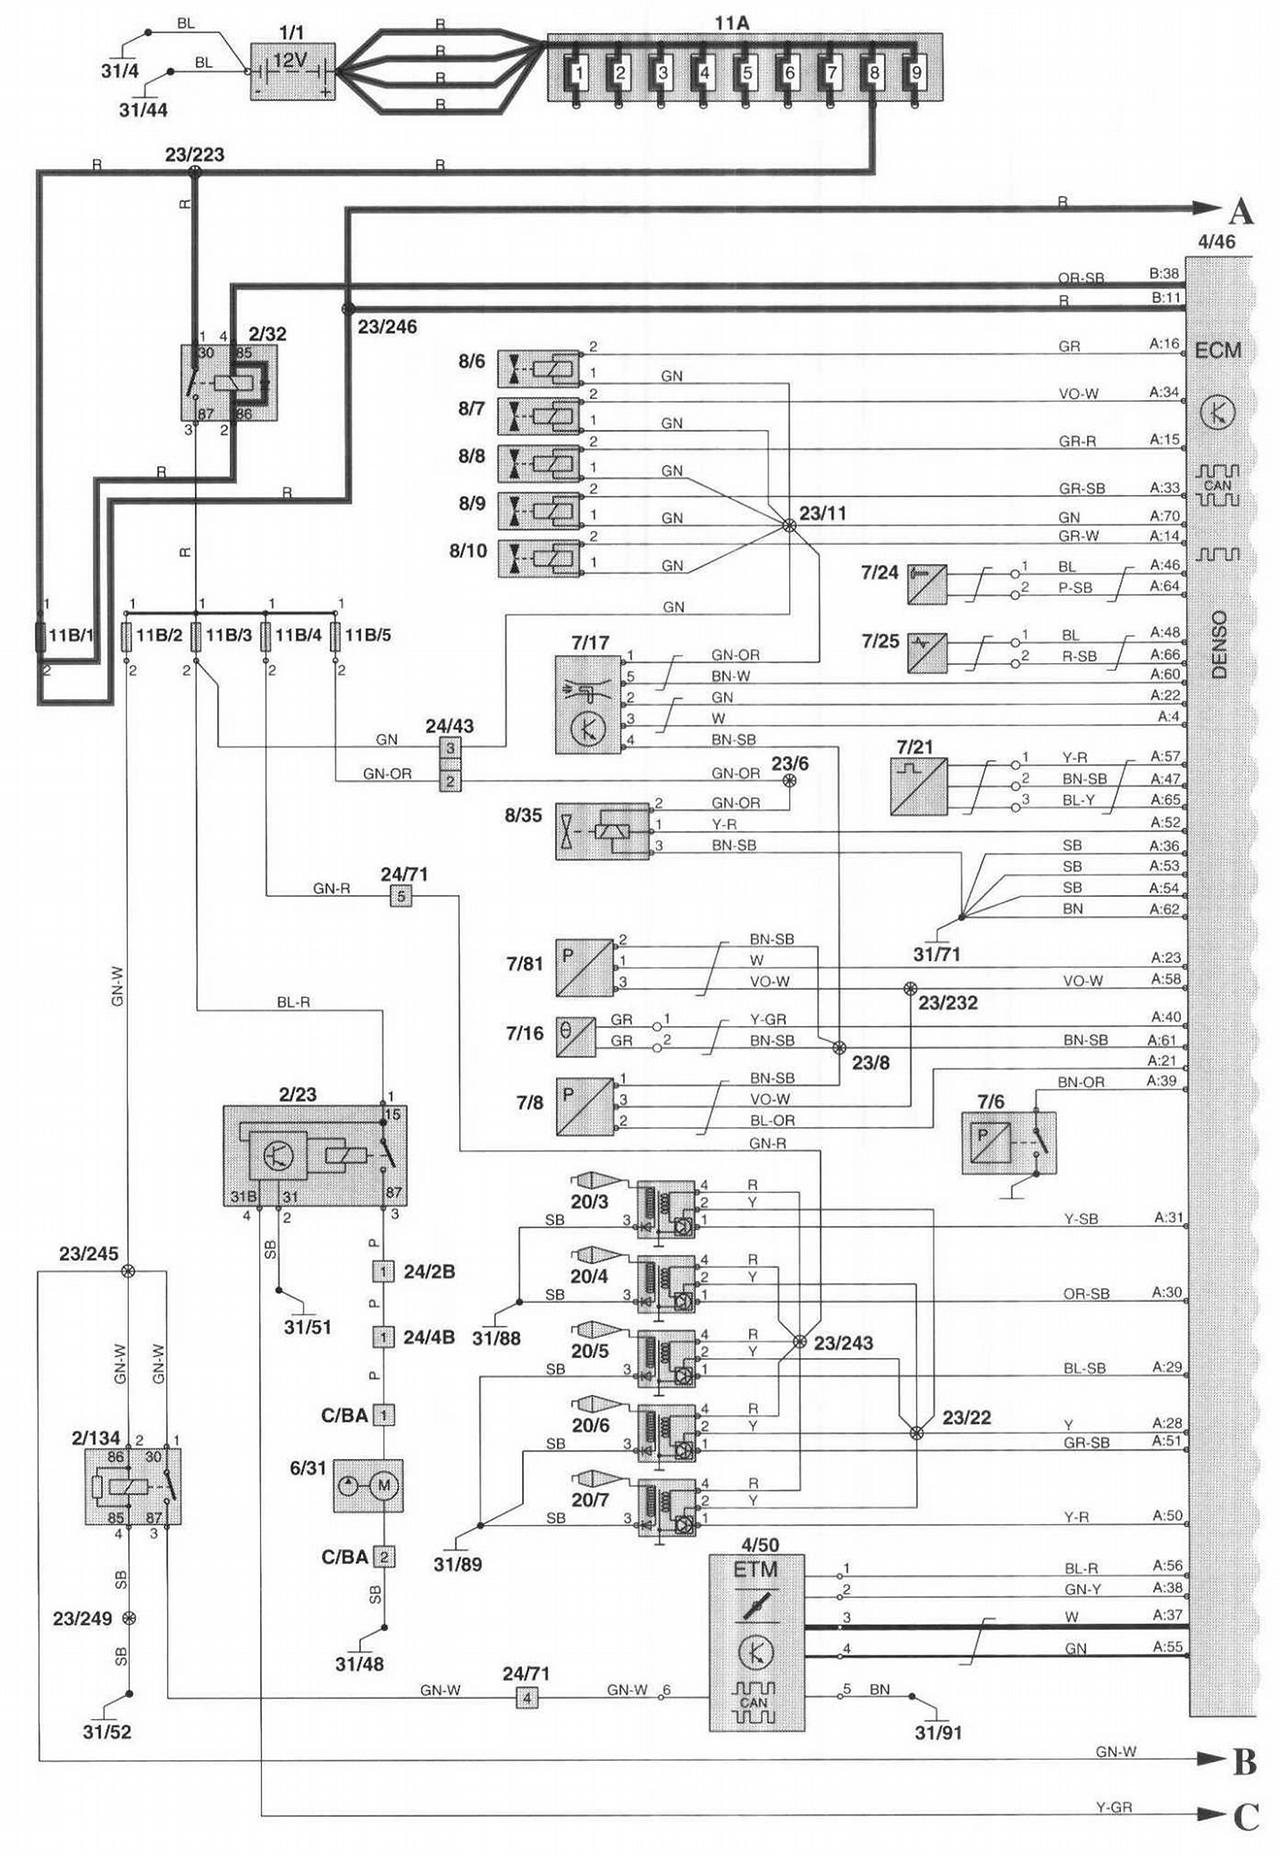 Wiring Diagram For 98 Volvo V70 Get Free Image About